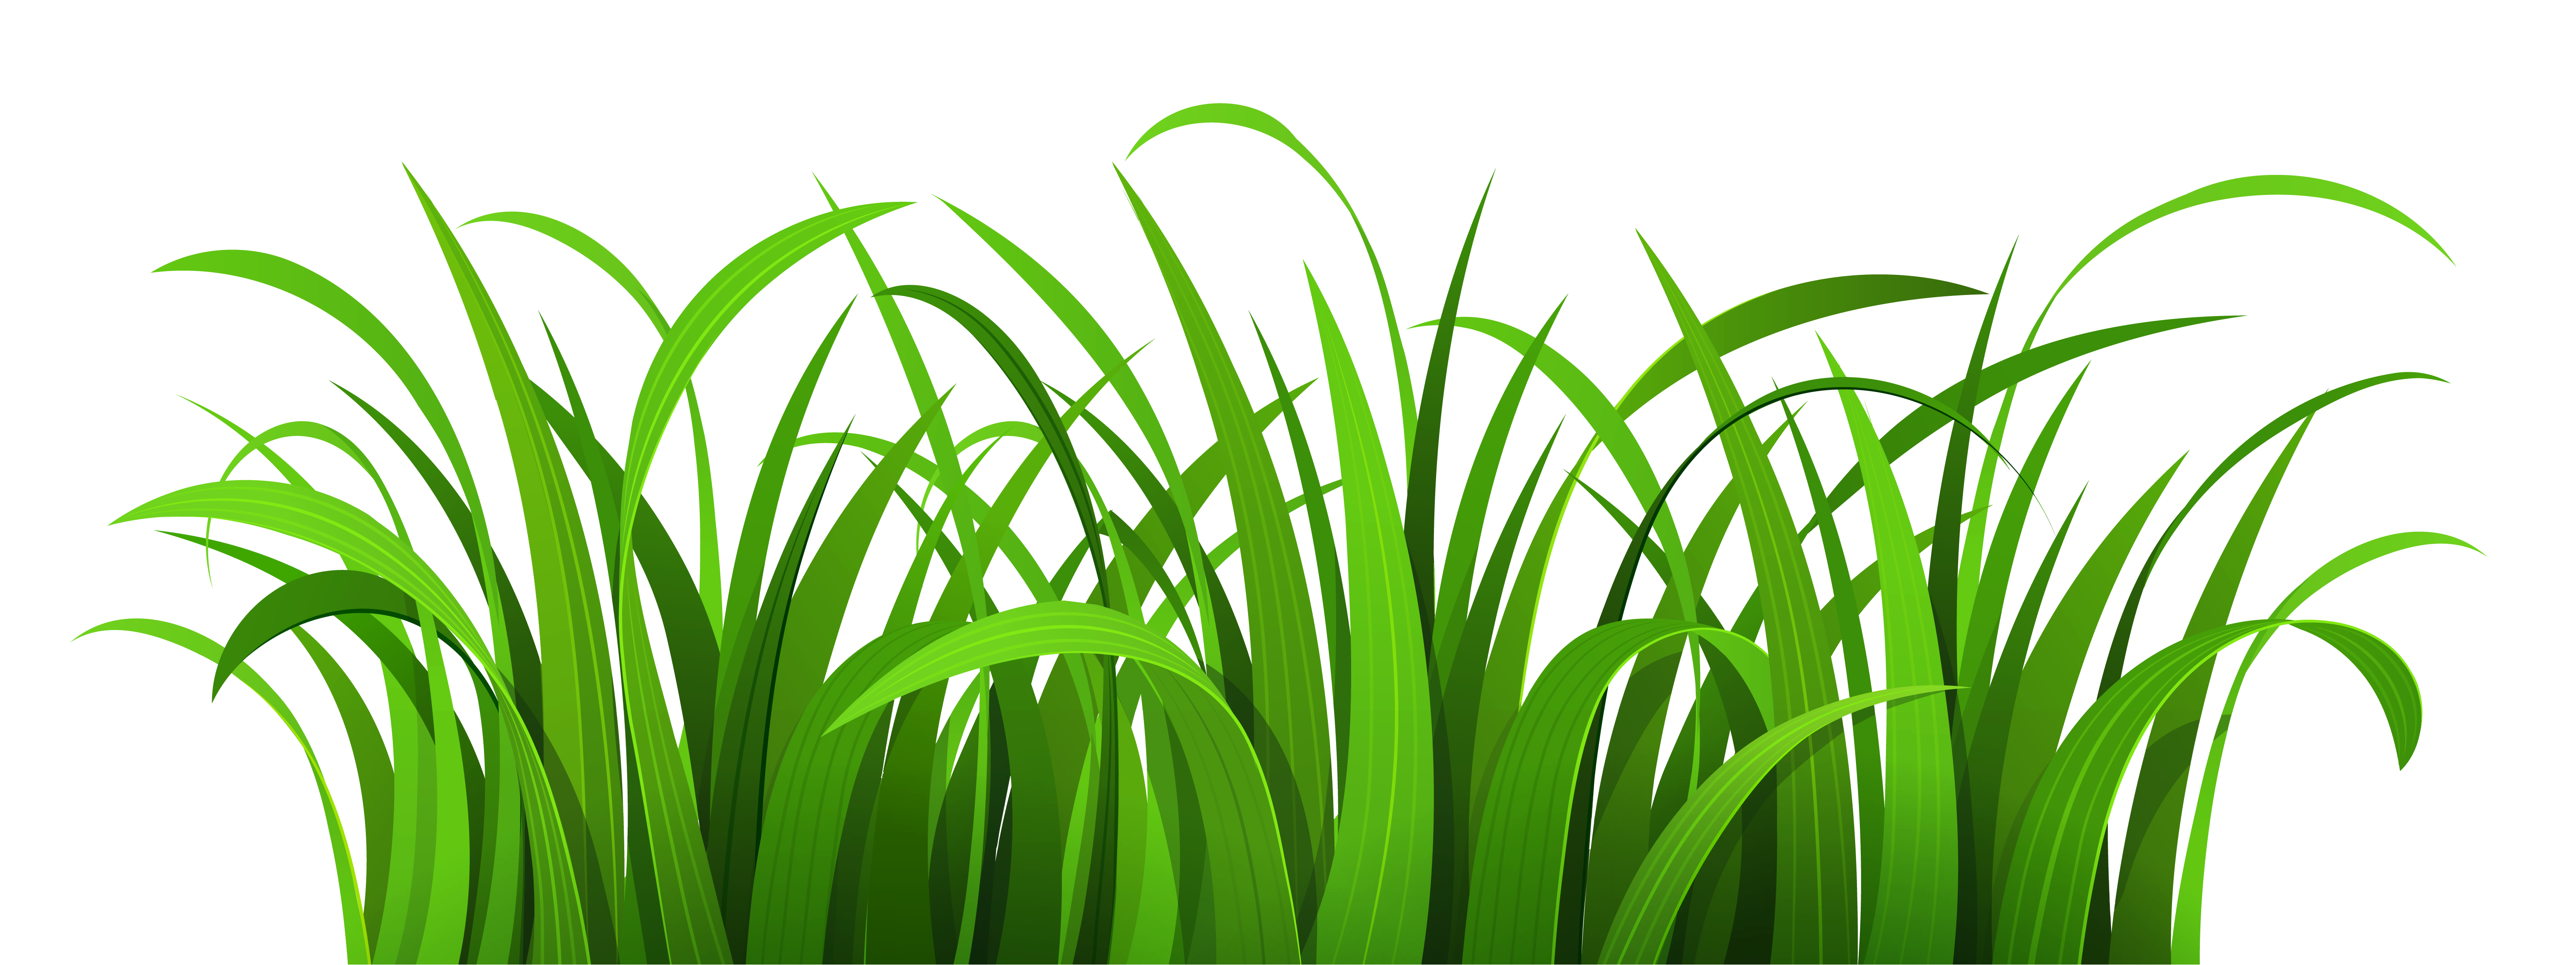 Grass png cartoon. Patch clipart gallery yopriceville